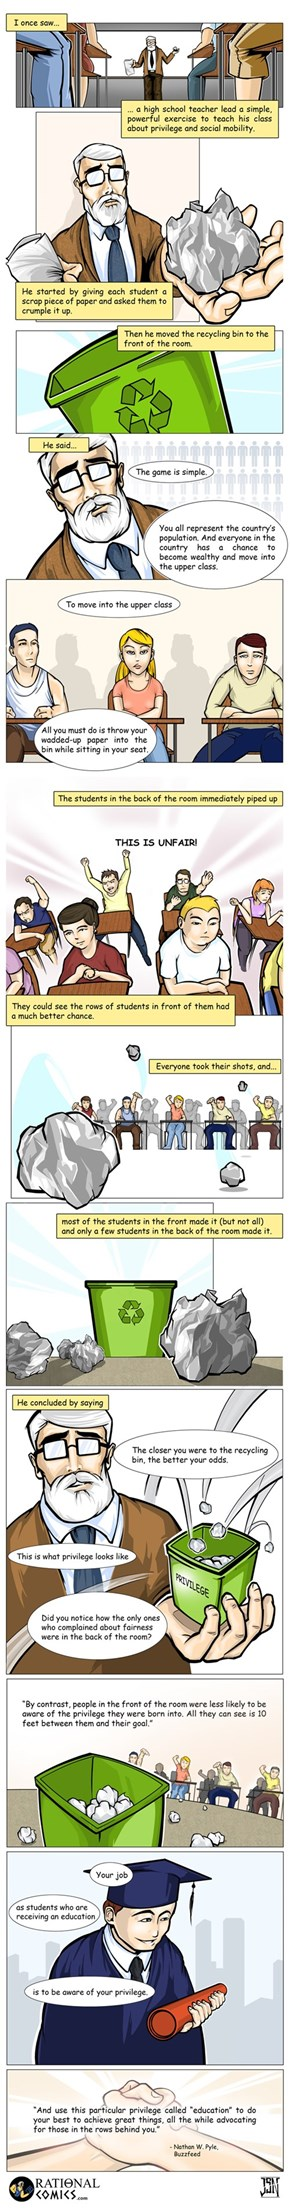 This Comic Demonstrates What Privilege Looks Like